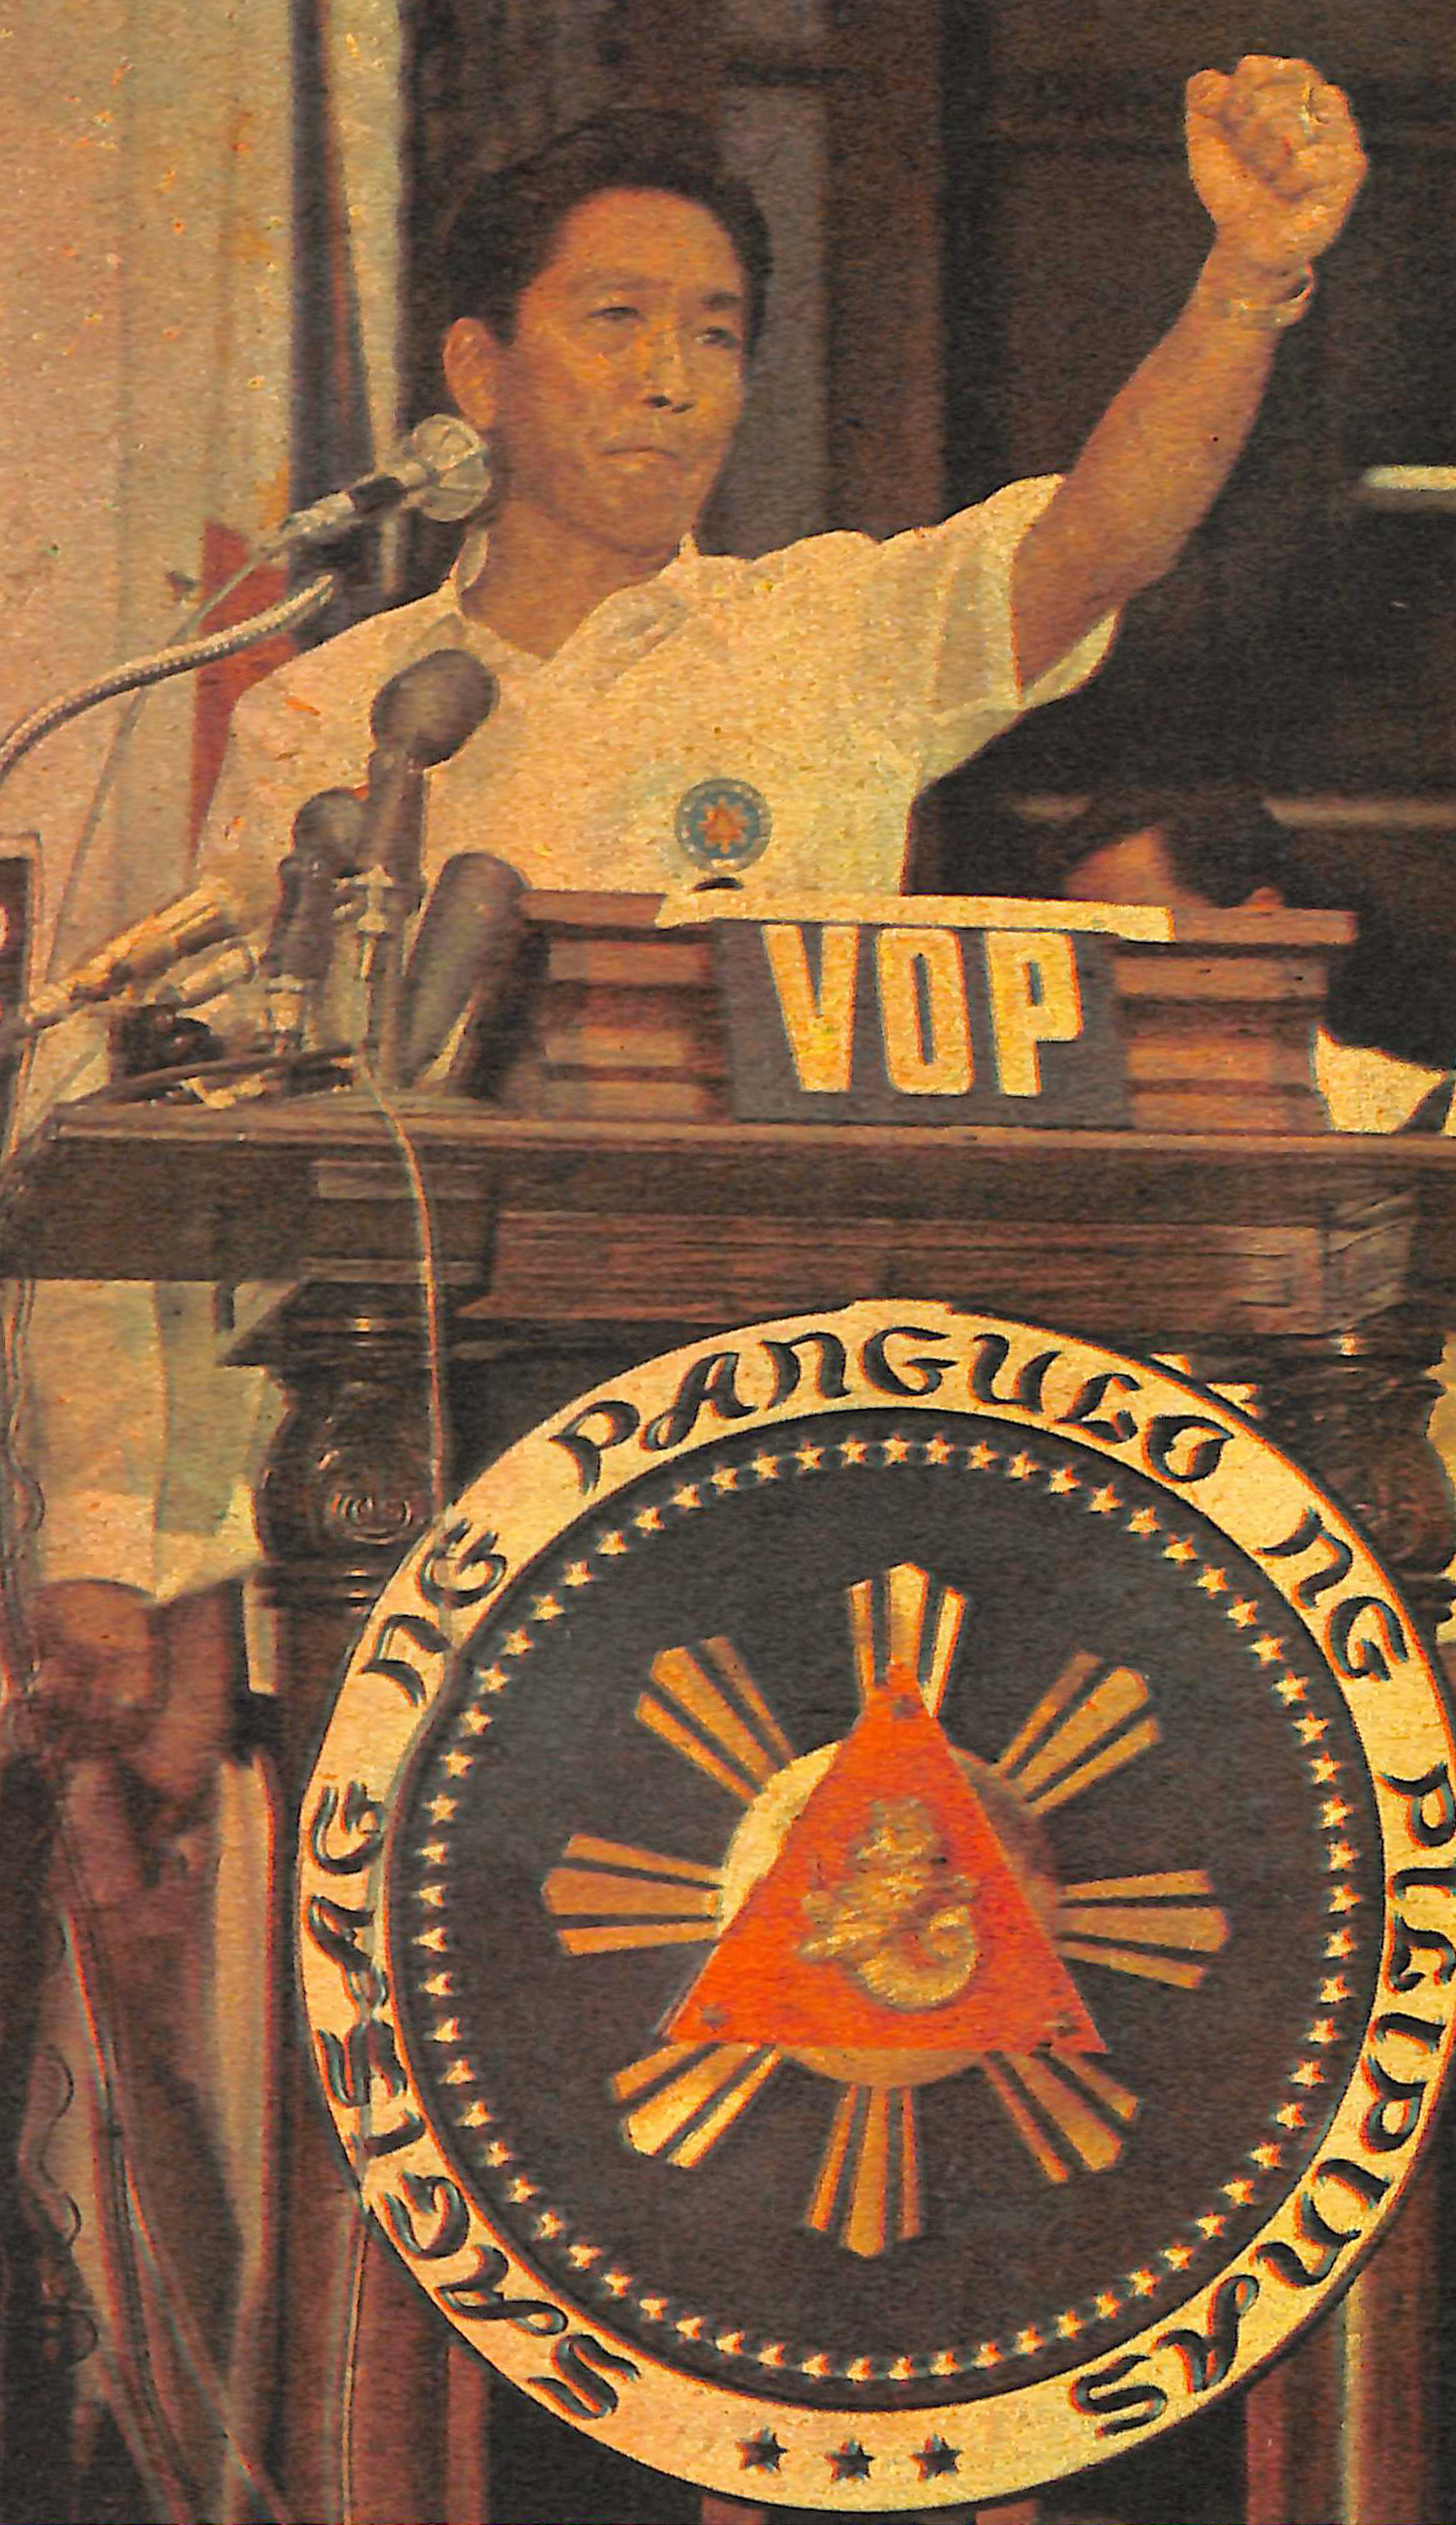 Martial Law, the dark chapter in Philippine history